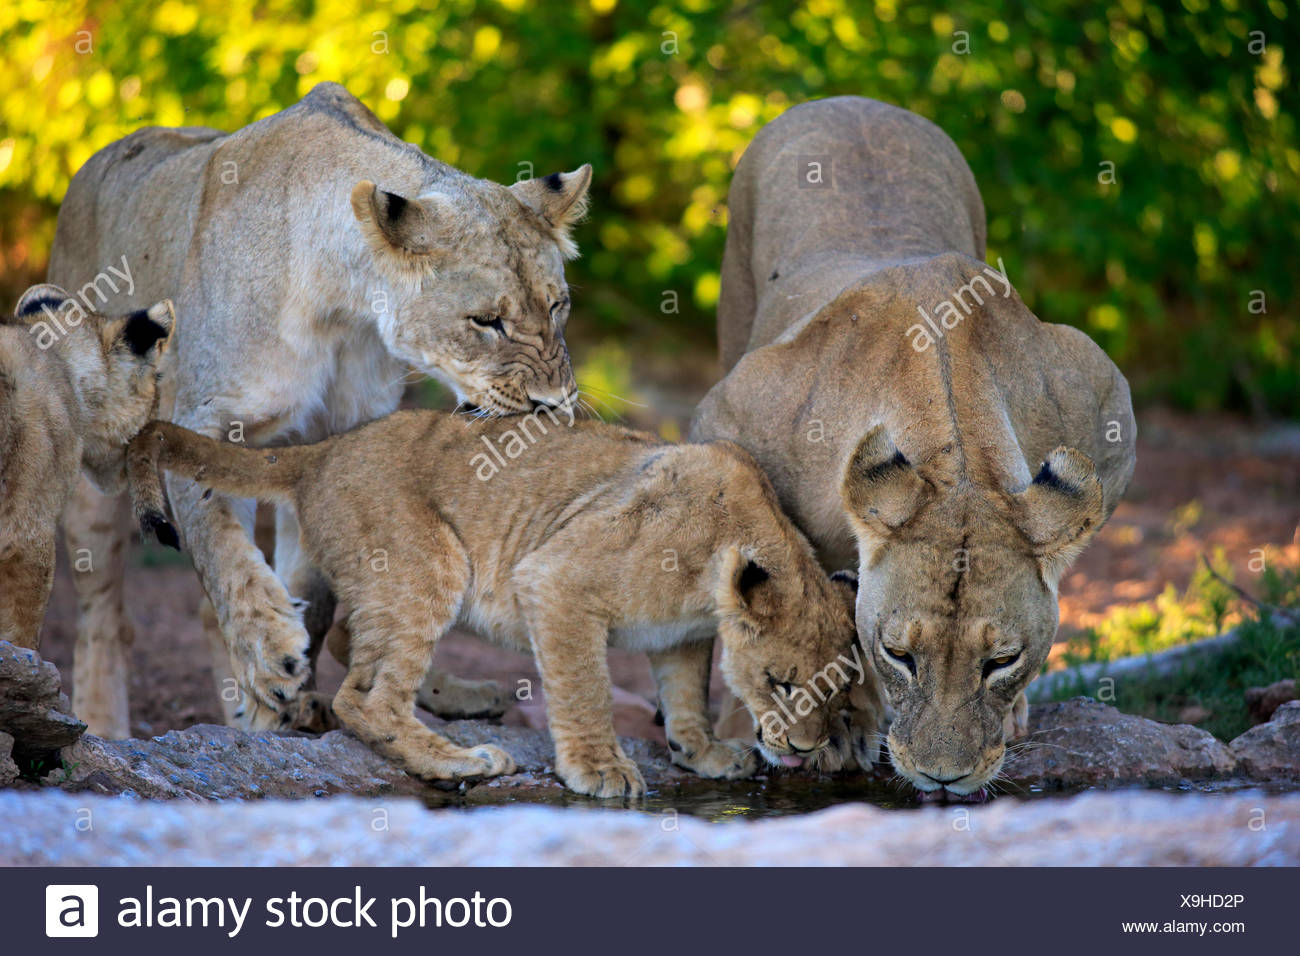 Lions (Panthera leo), lionesses with cubs, four months, at the water, drinking, Tswalu Game Reserve, Kalahari Desert - Stock Image